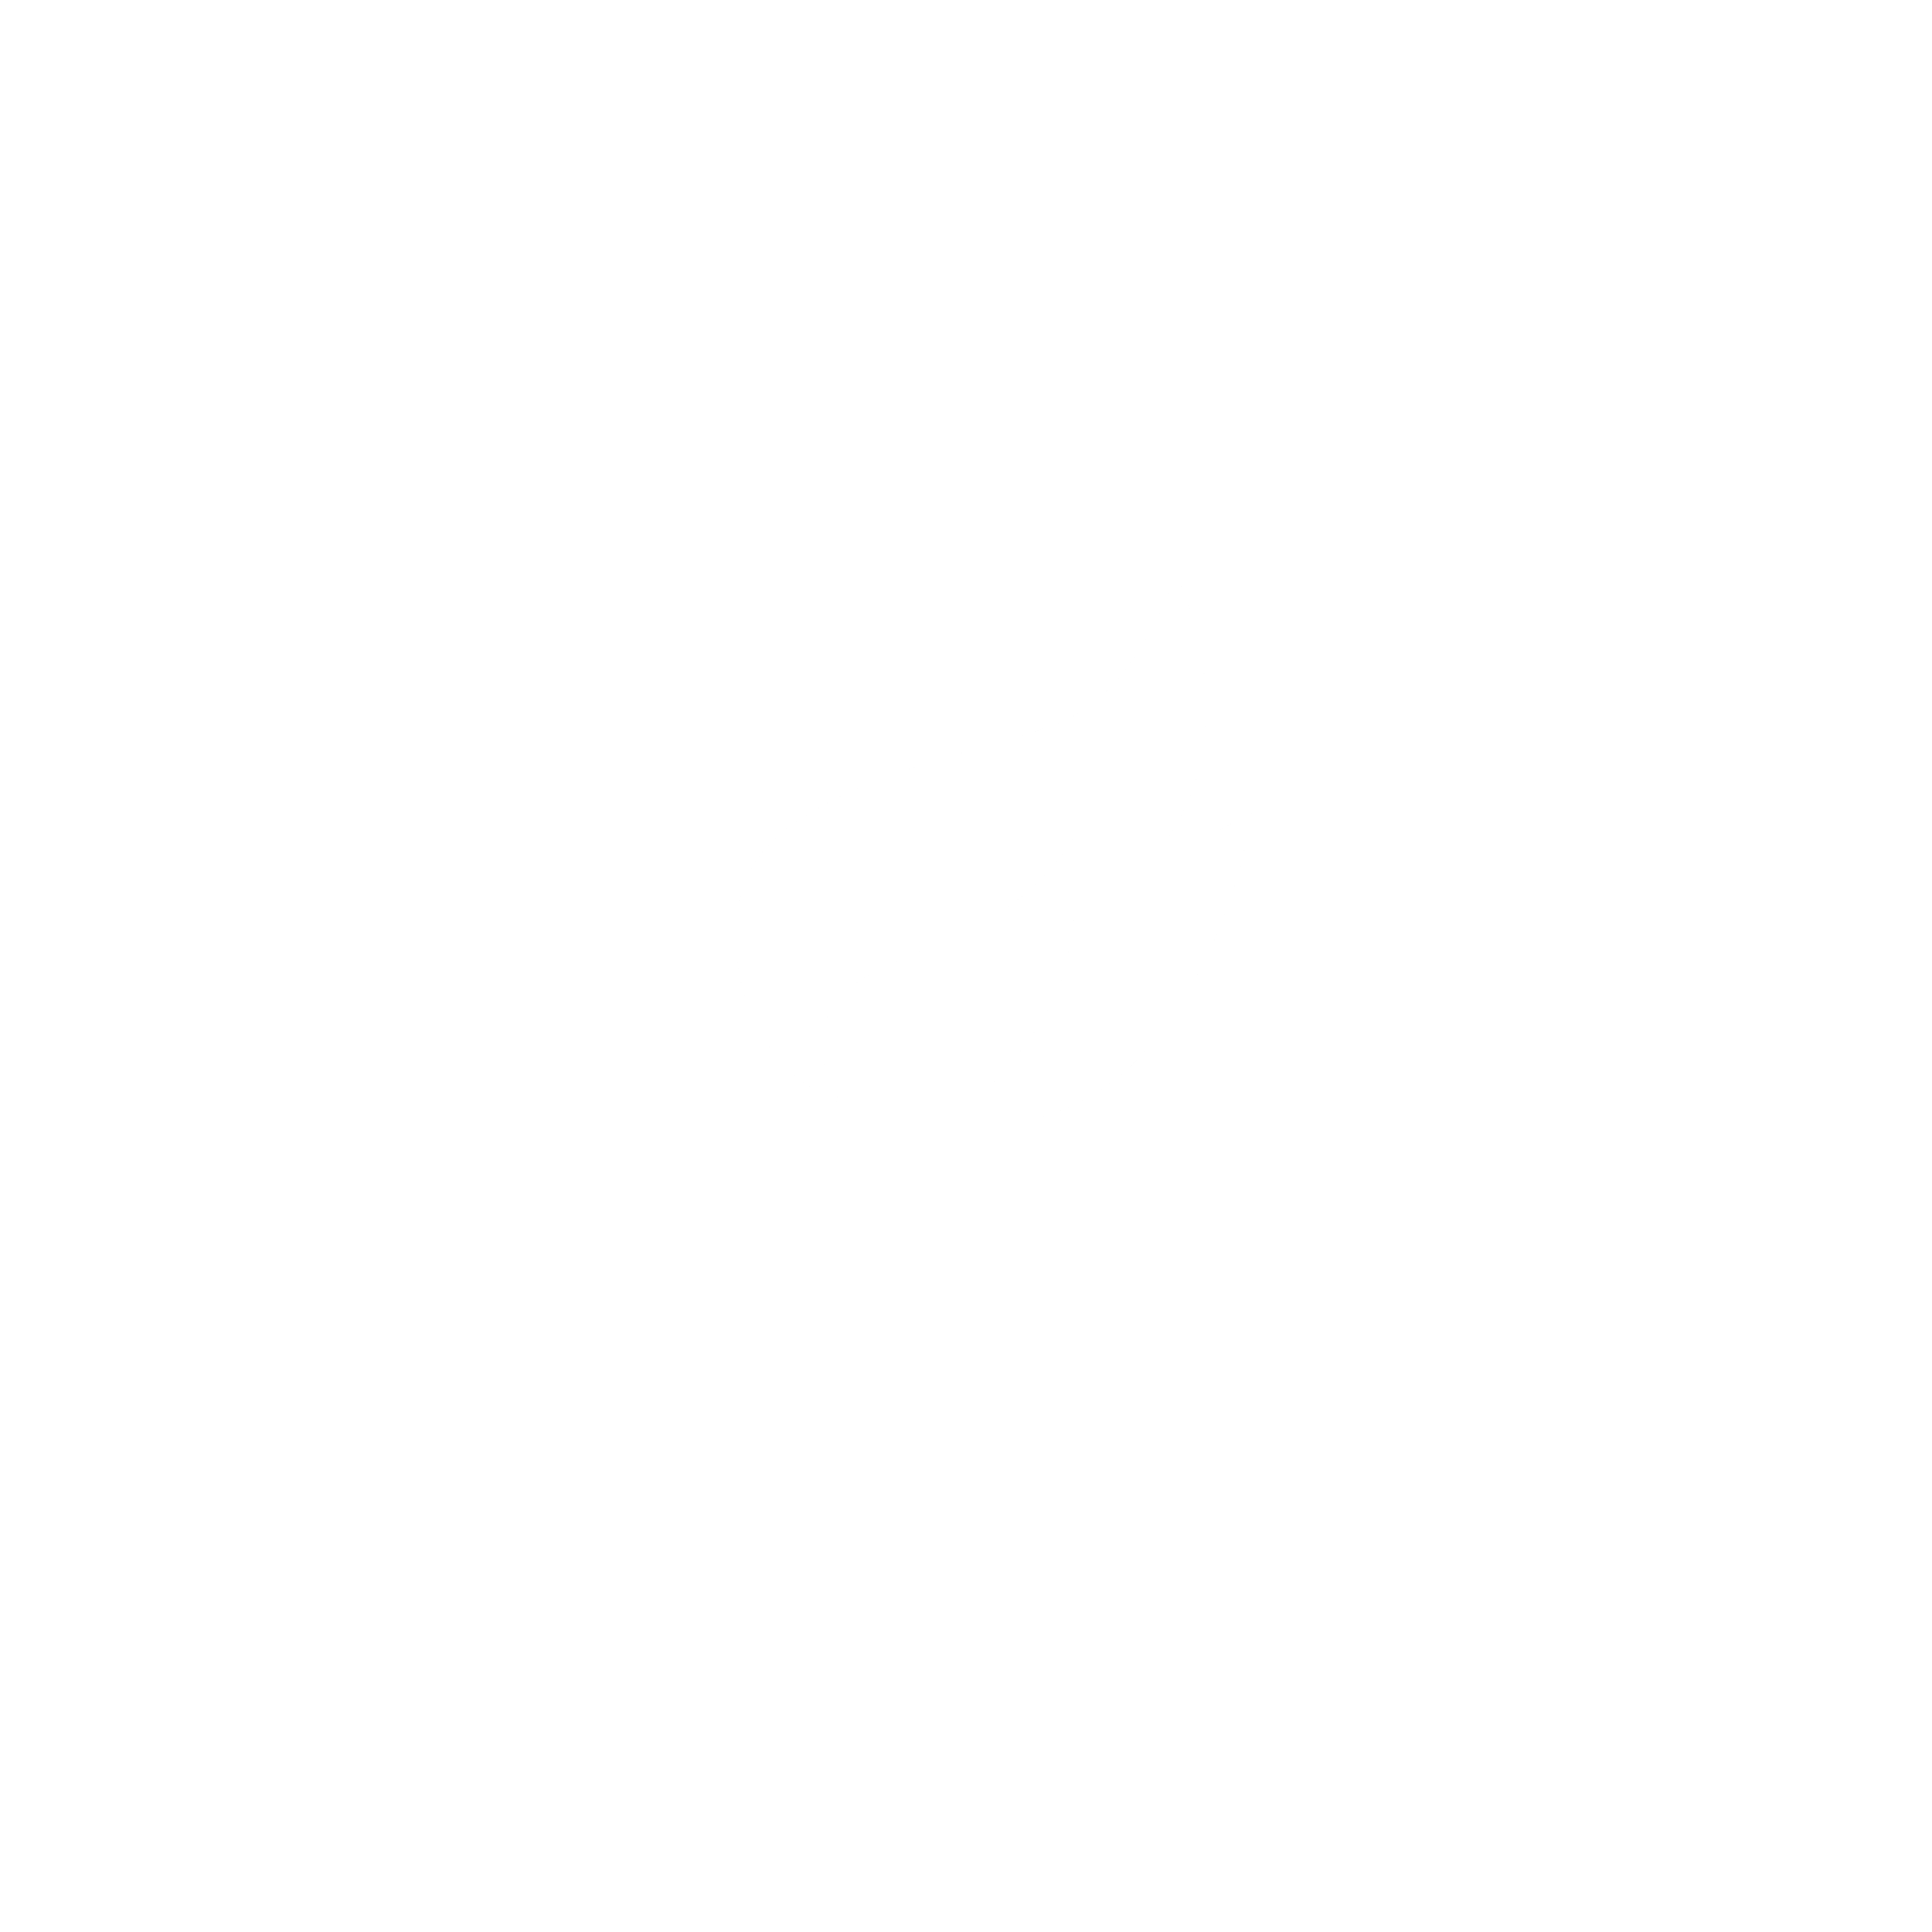 Png south pacific games. Suva logo transparent svg